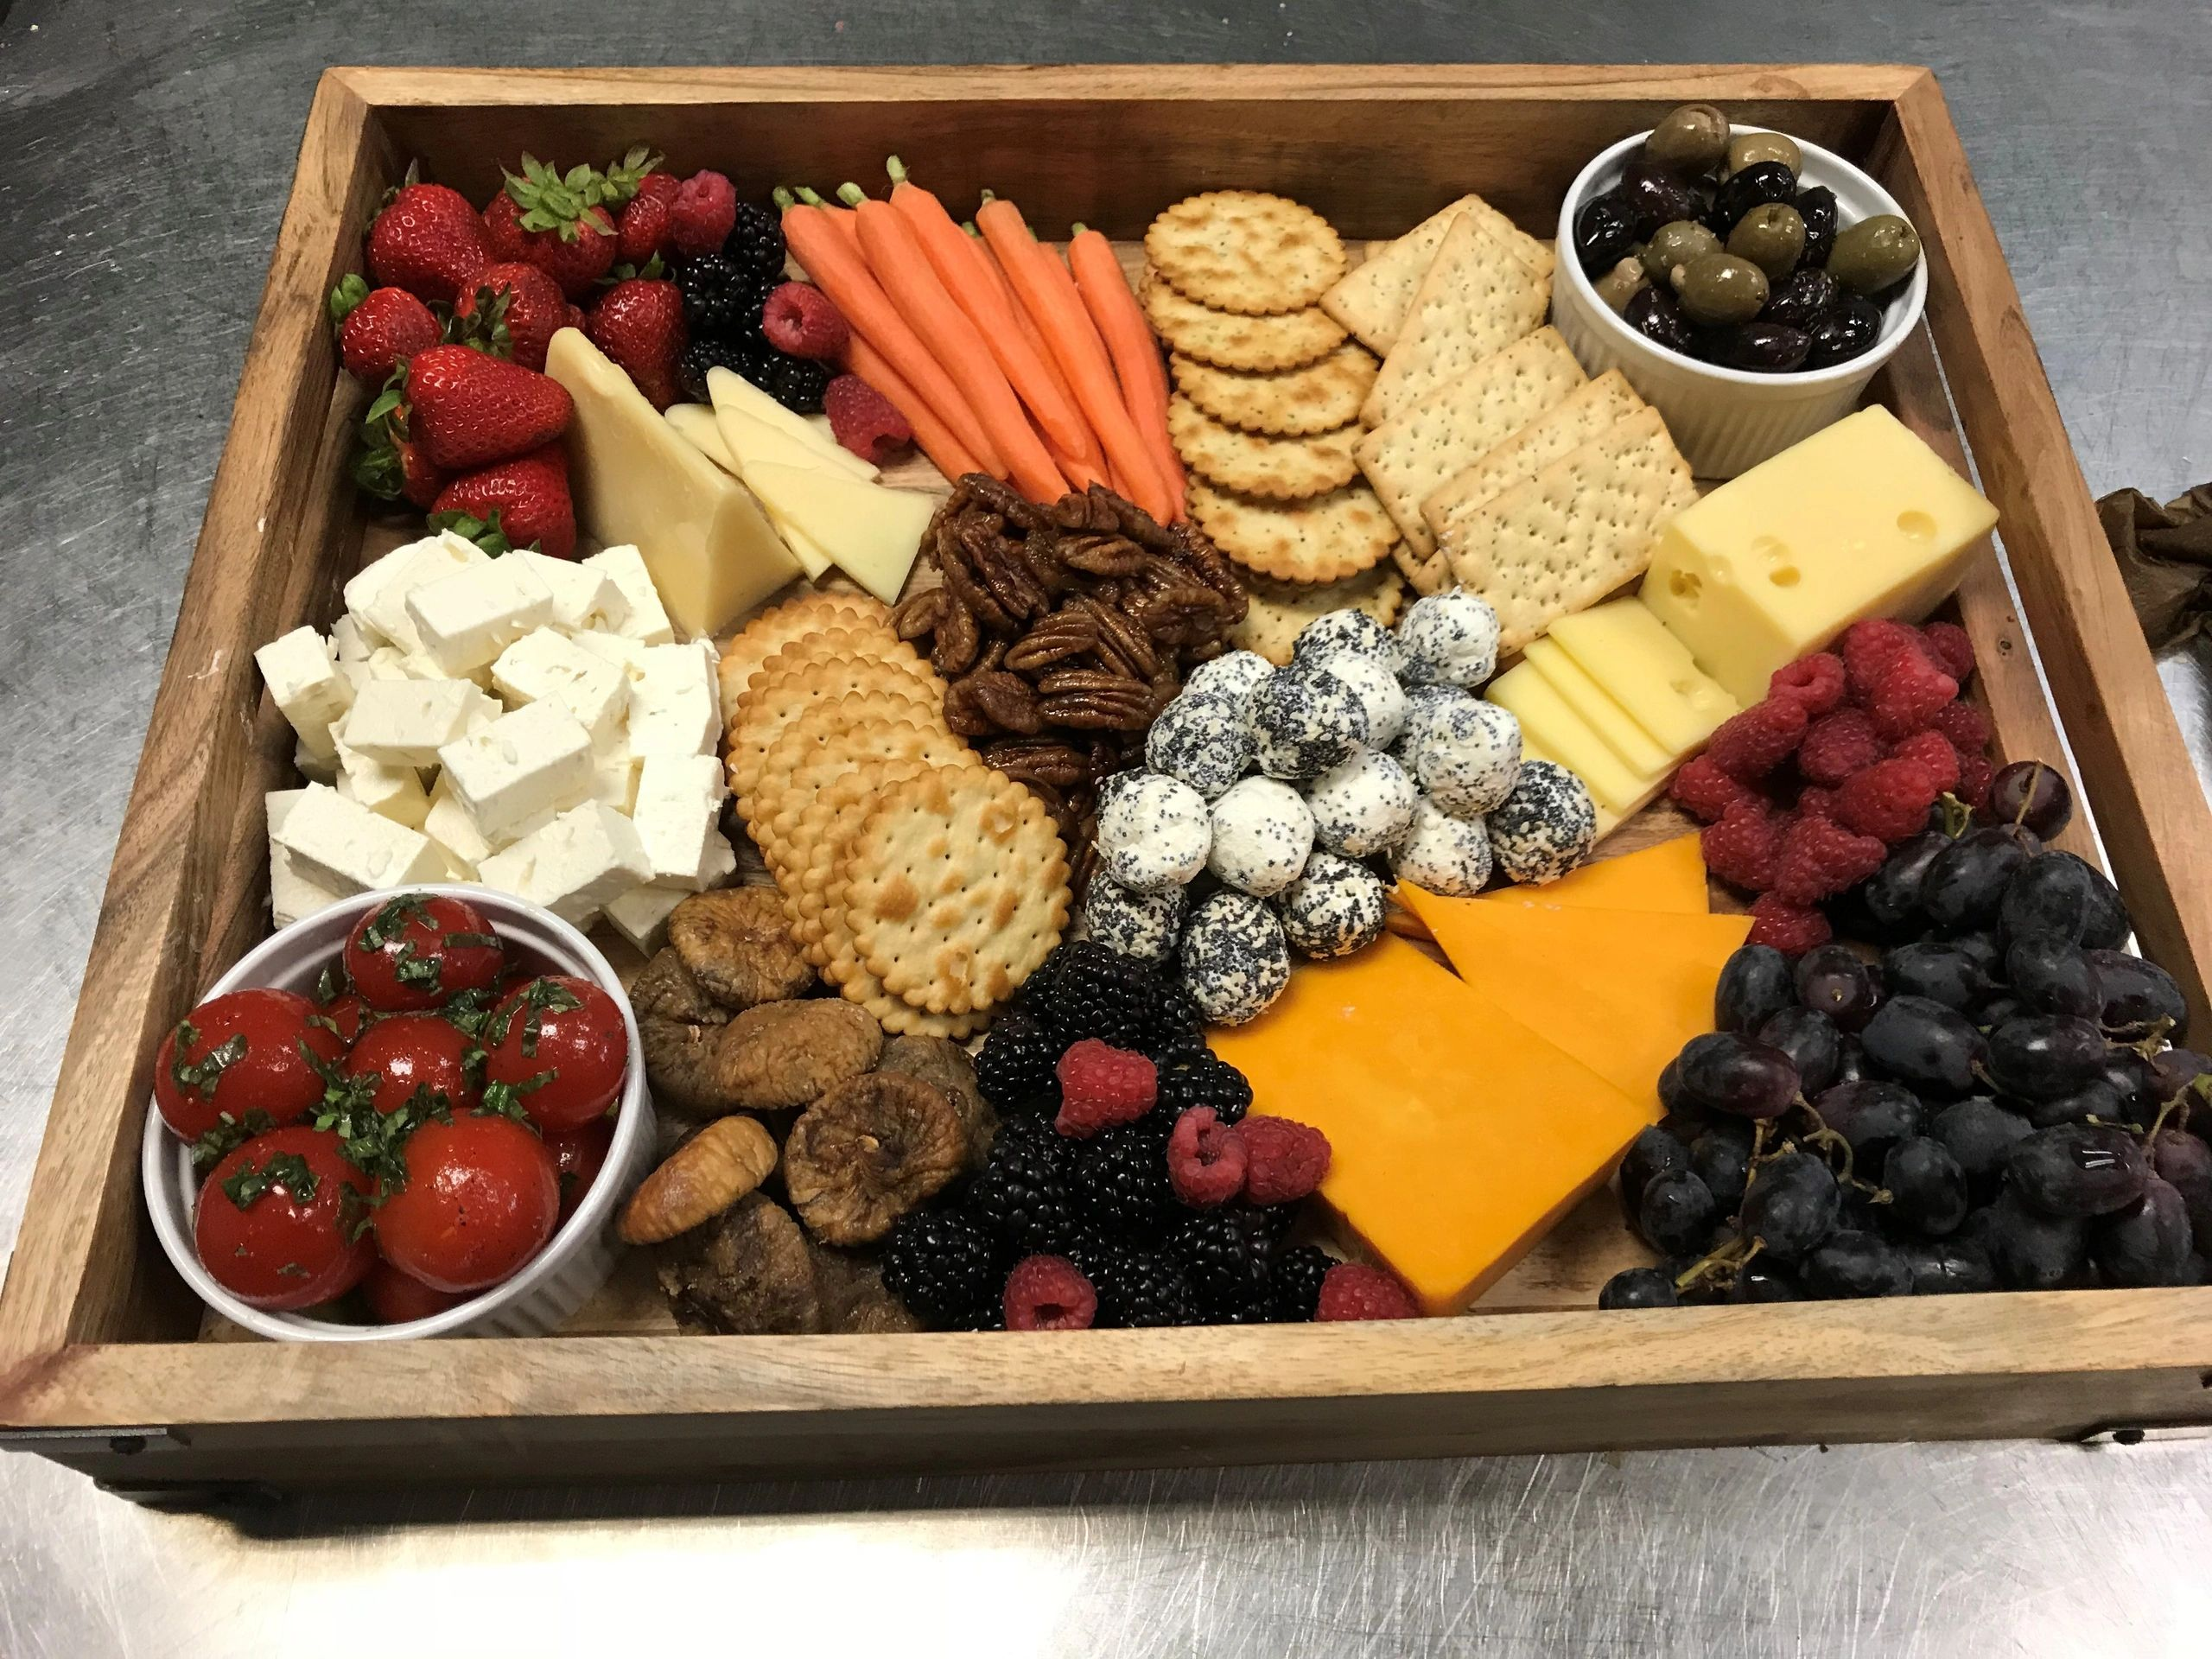 Cold vegetable, cheese and fruit appetizer tray